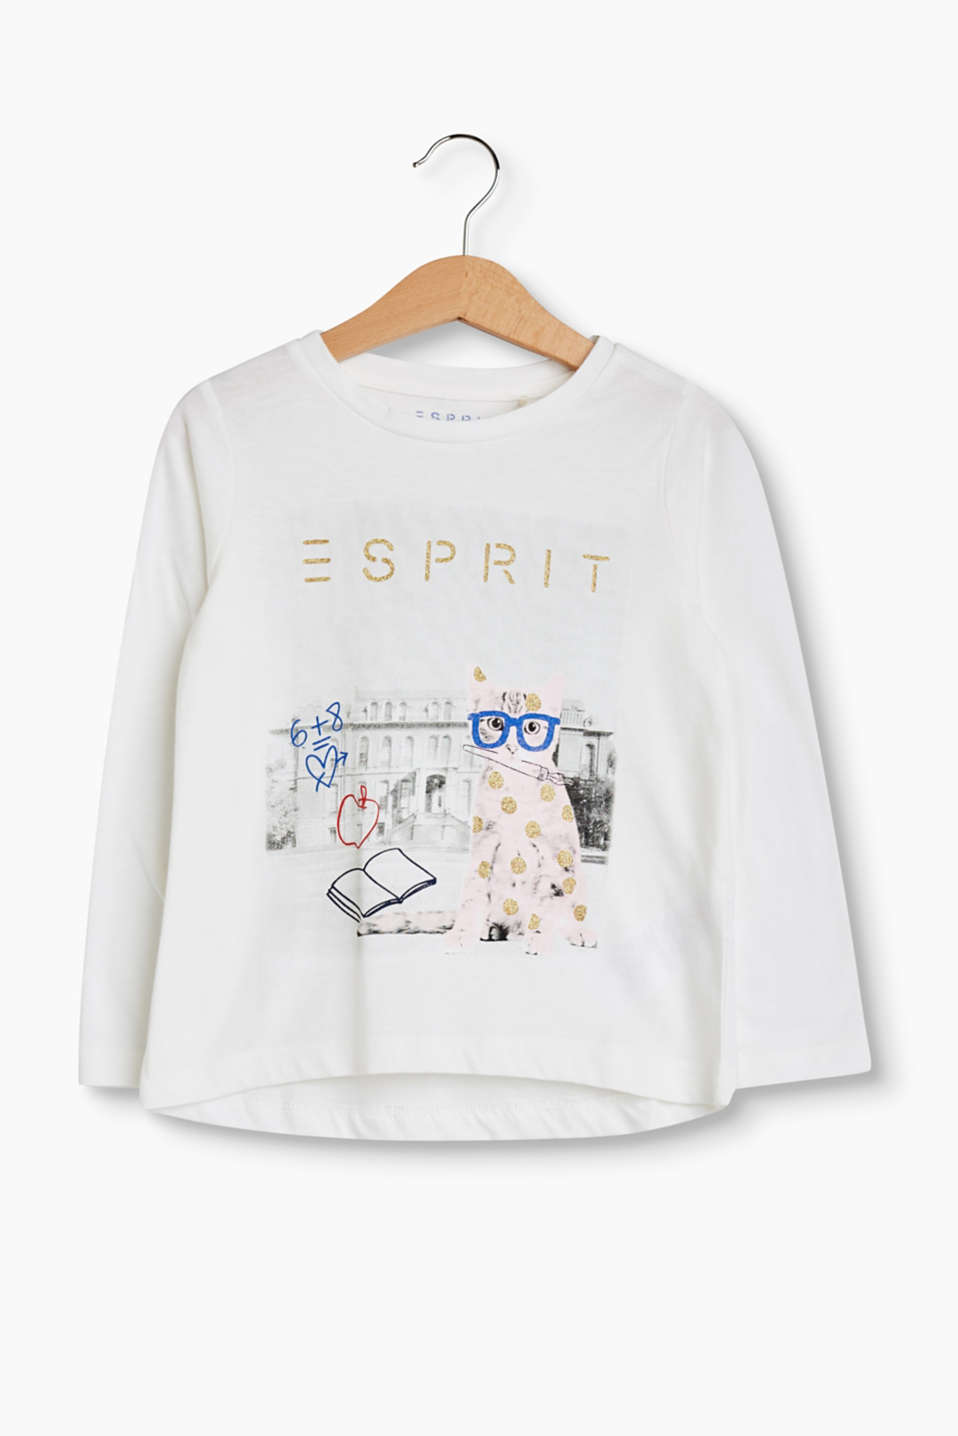 Esprit - Printed long sleeve top in 100% cotton